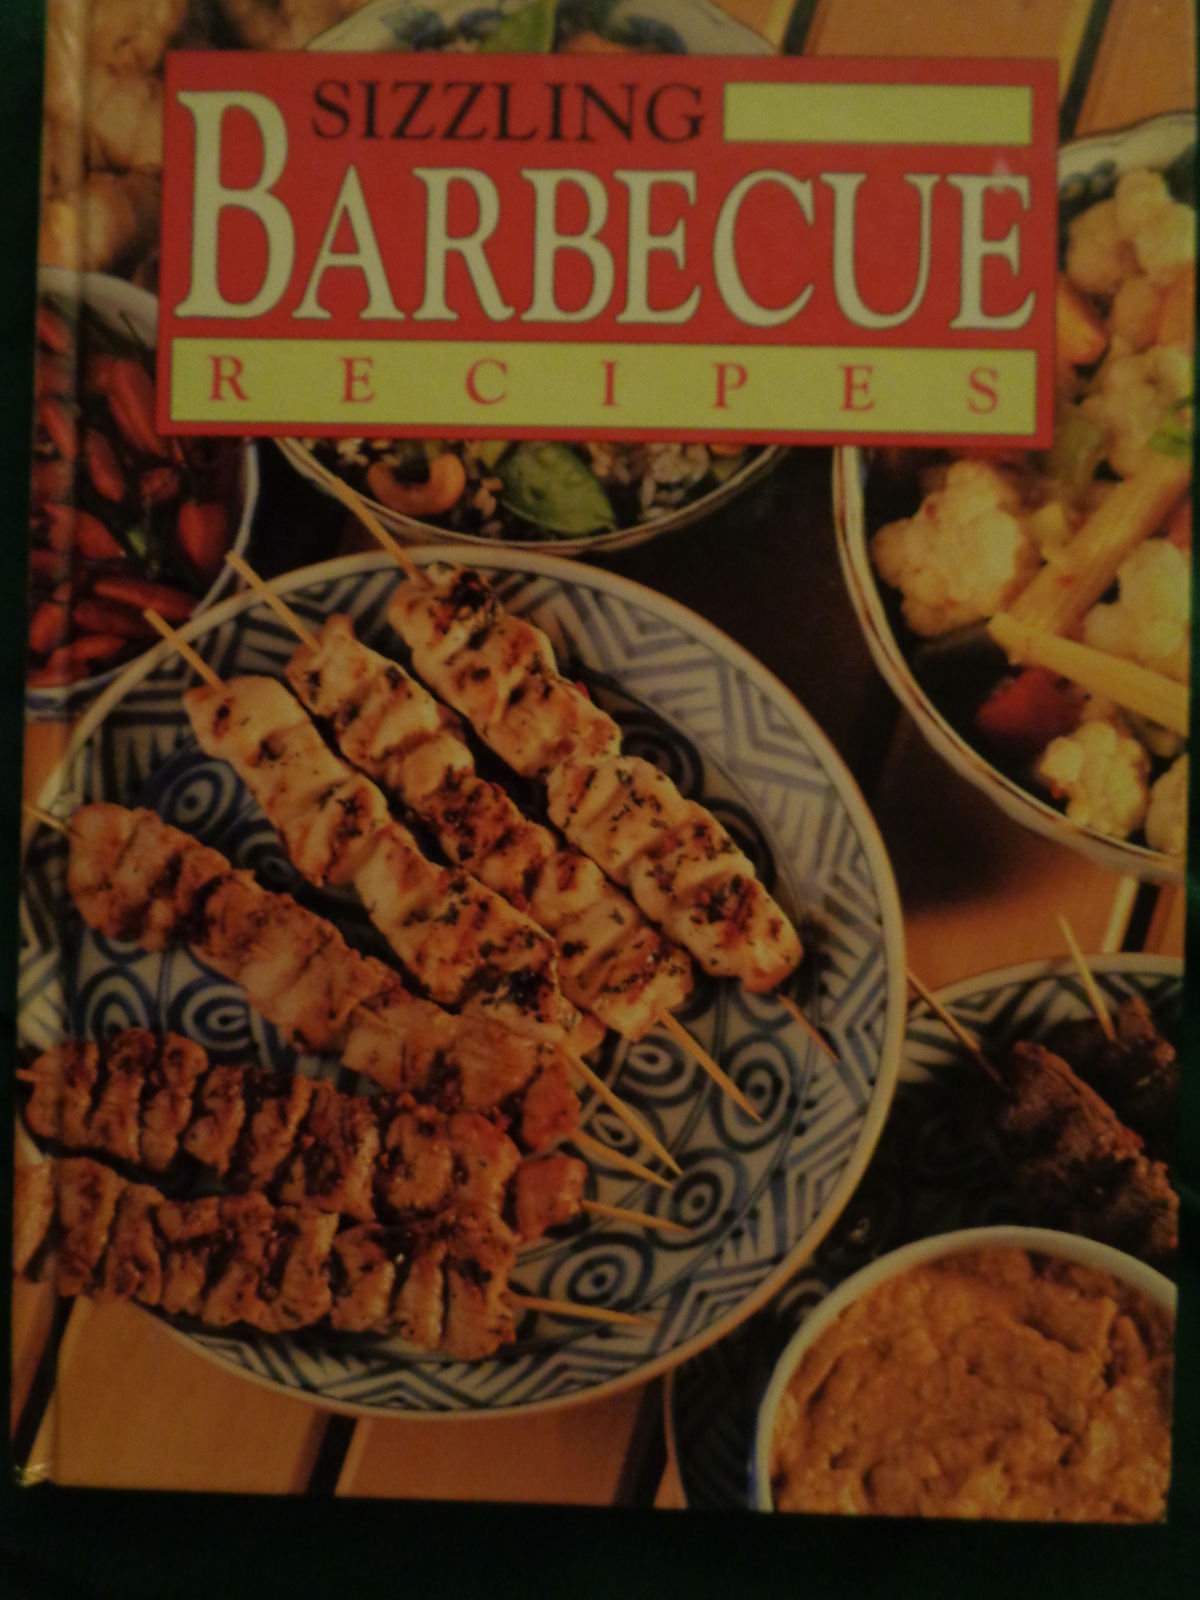 Sizzling Barbecue Recipes cookbook, Dust Jacket 1995 AJB Fairfax press